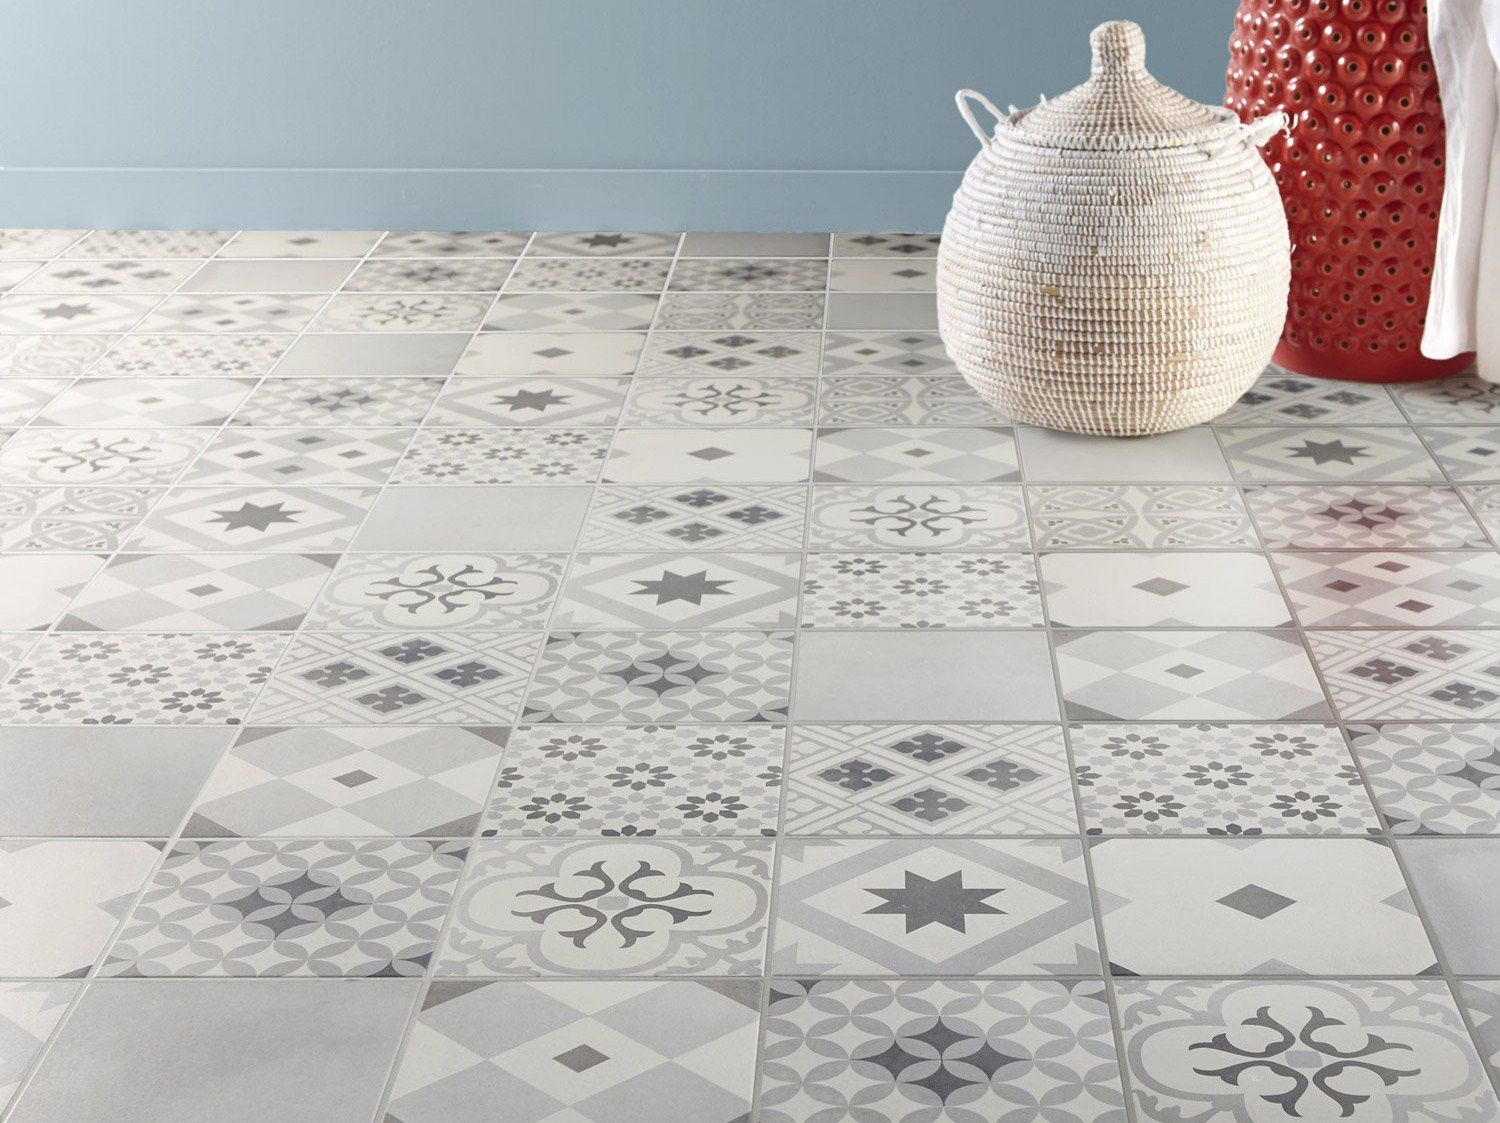 Carrelage design carrelage carreaux de ciment castorama moderne design po - Leroy merlin colle carrelage ...